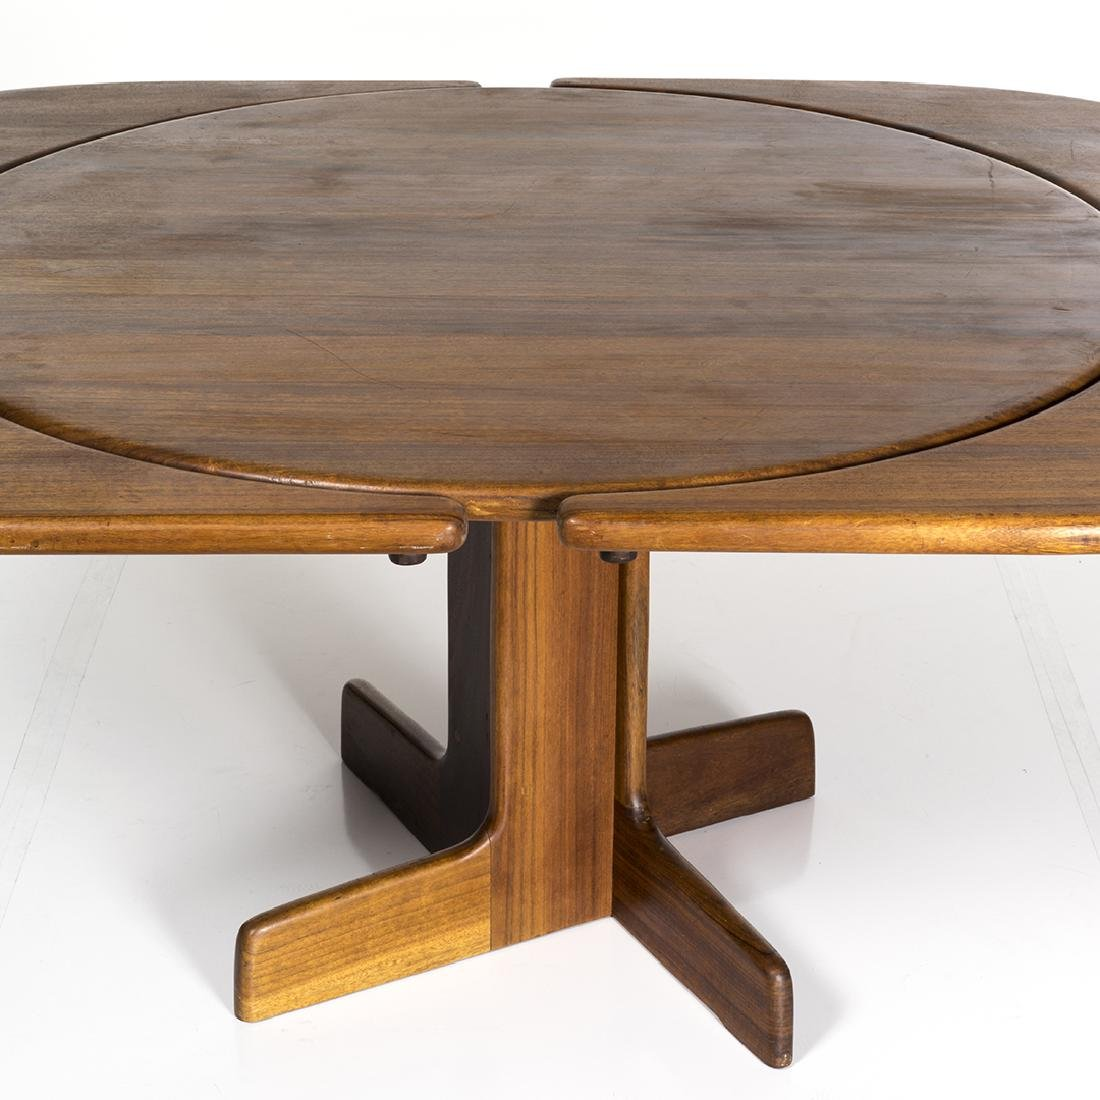 Gerald McCabe Dining Table - 2